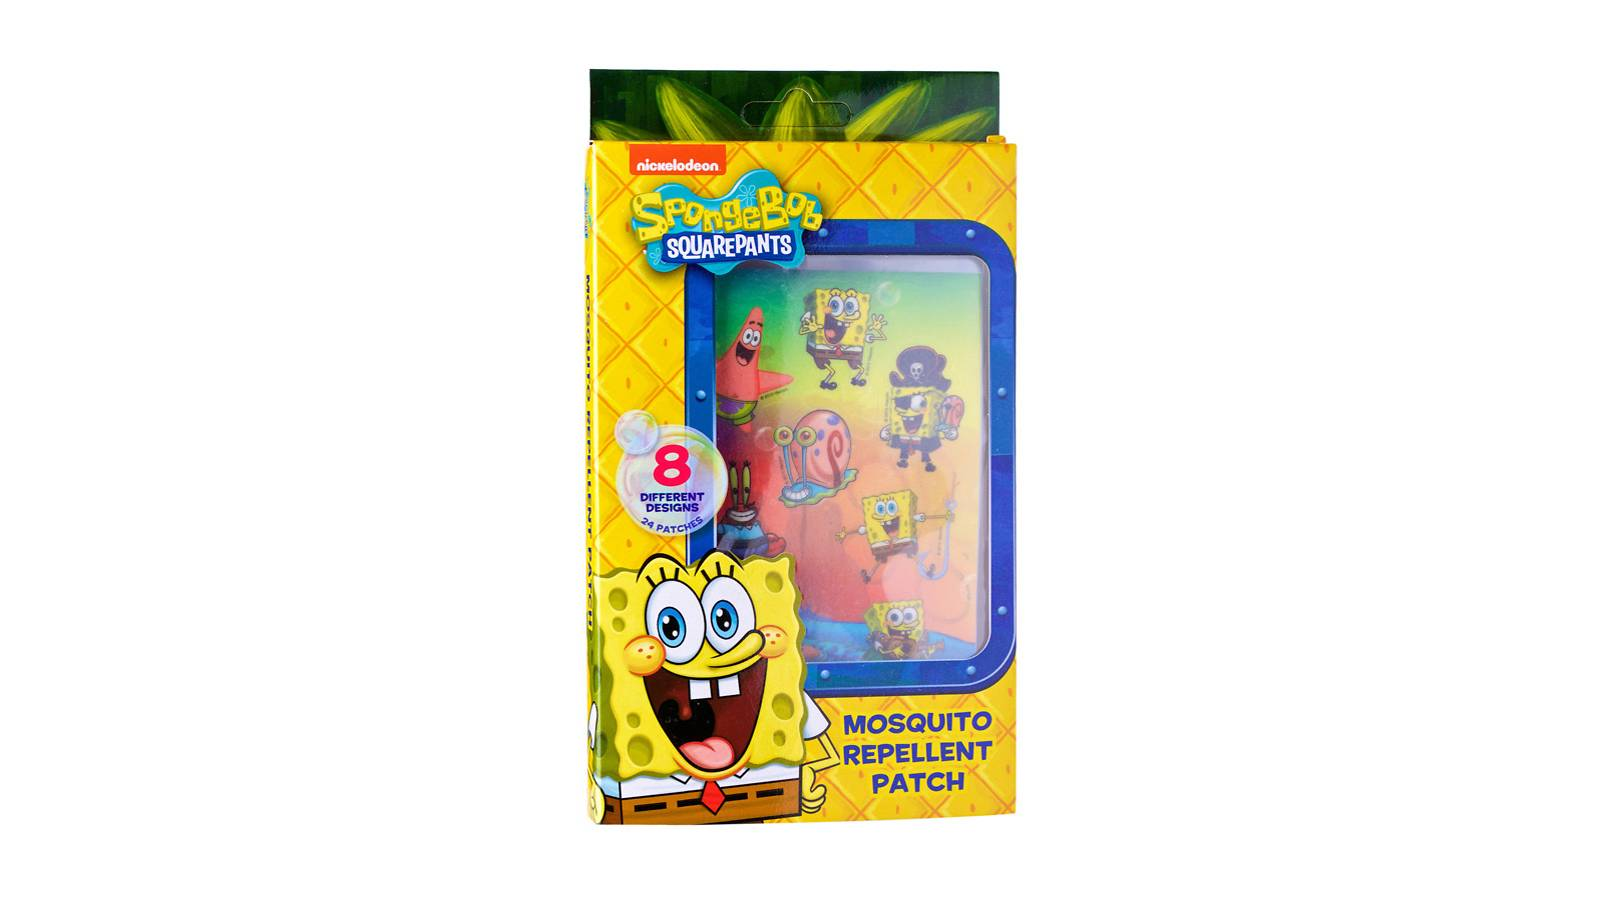 Parents-Spongebob Mosquito Repellent Patch 24 patches